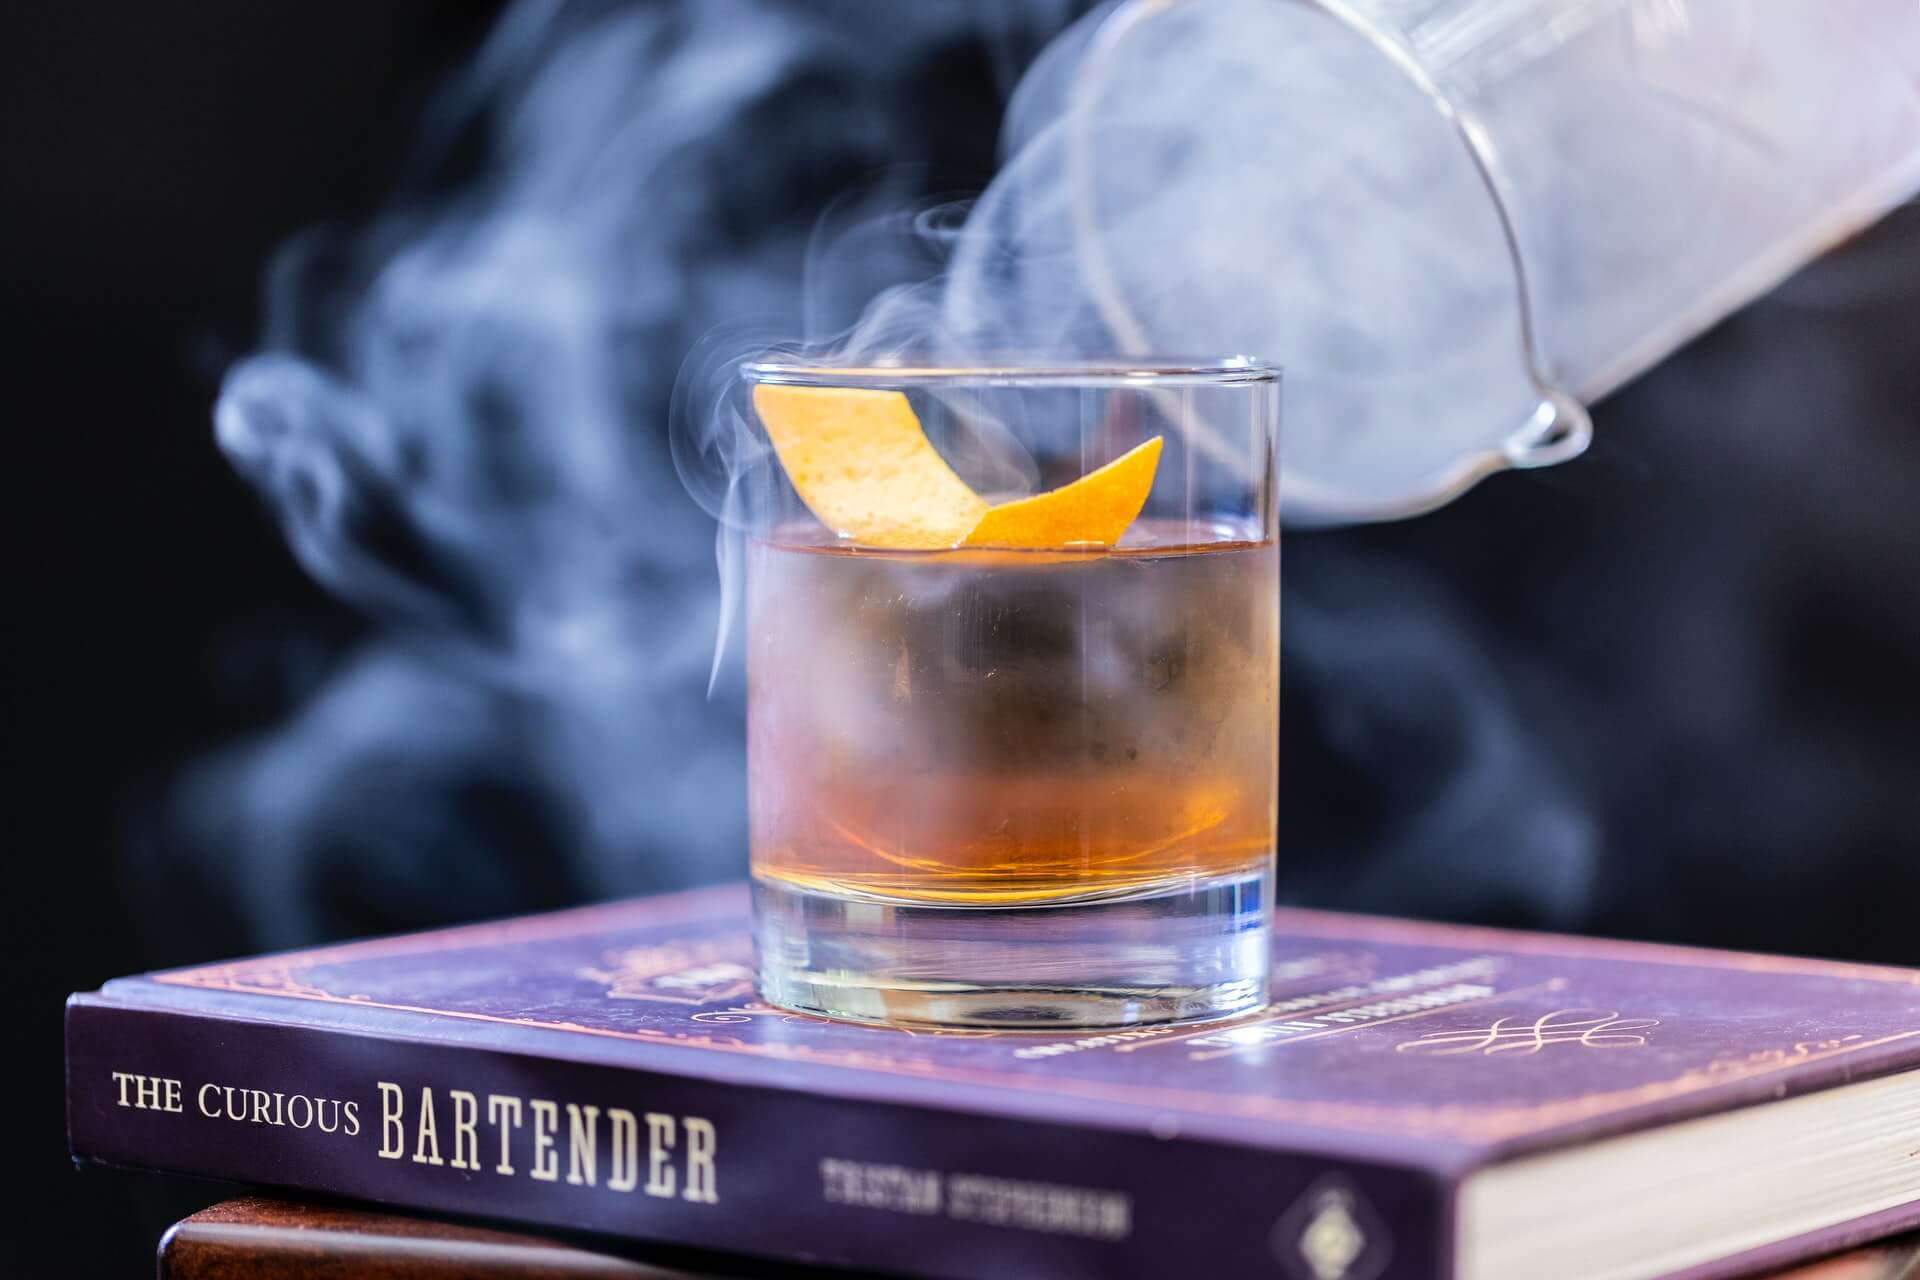 Cocktail and smoke on top stack of books